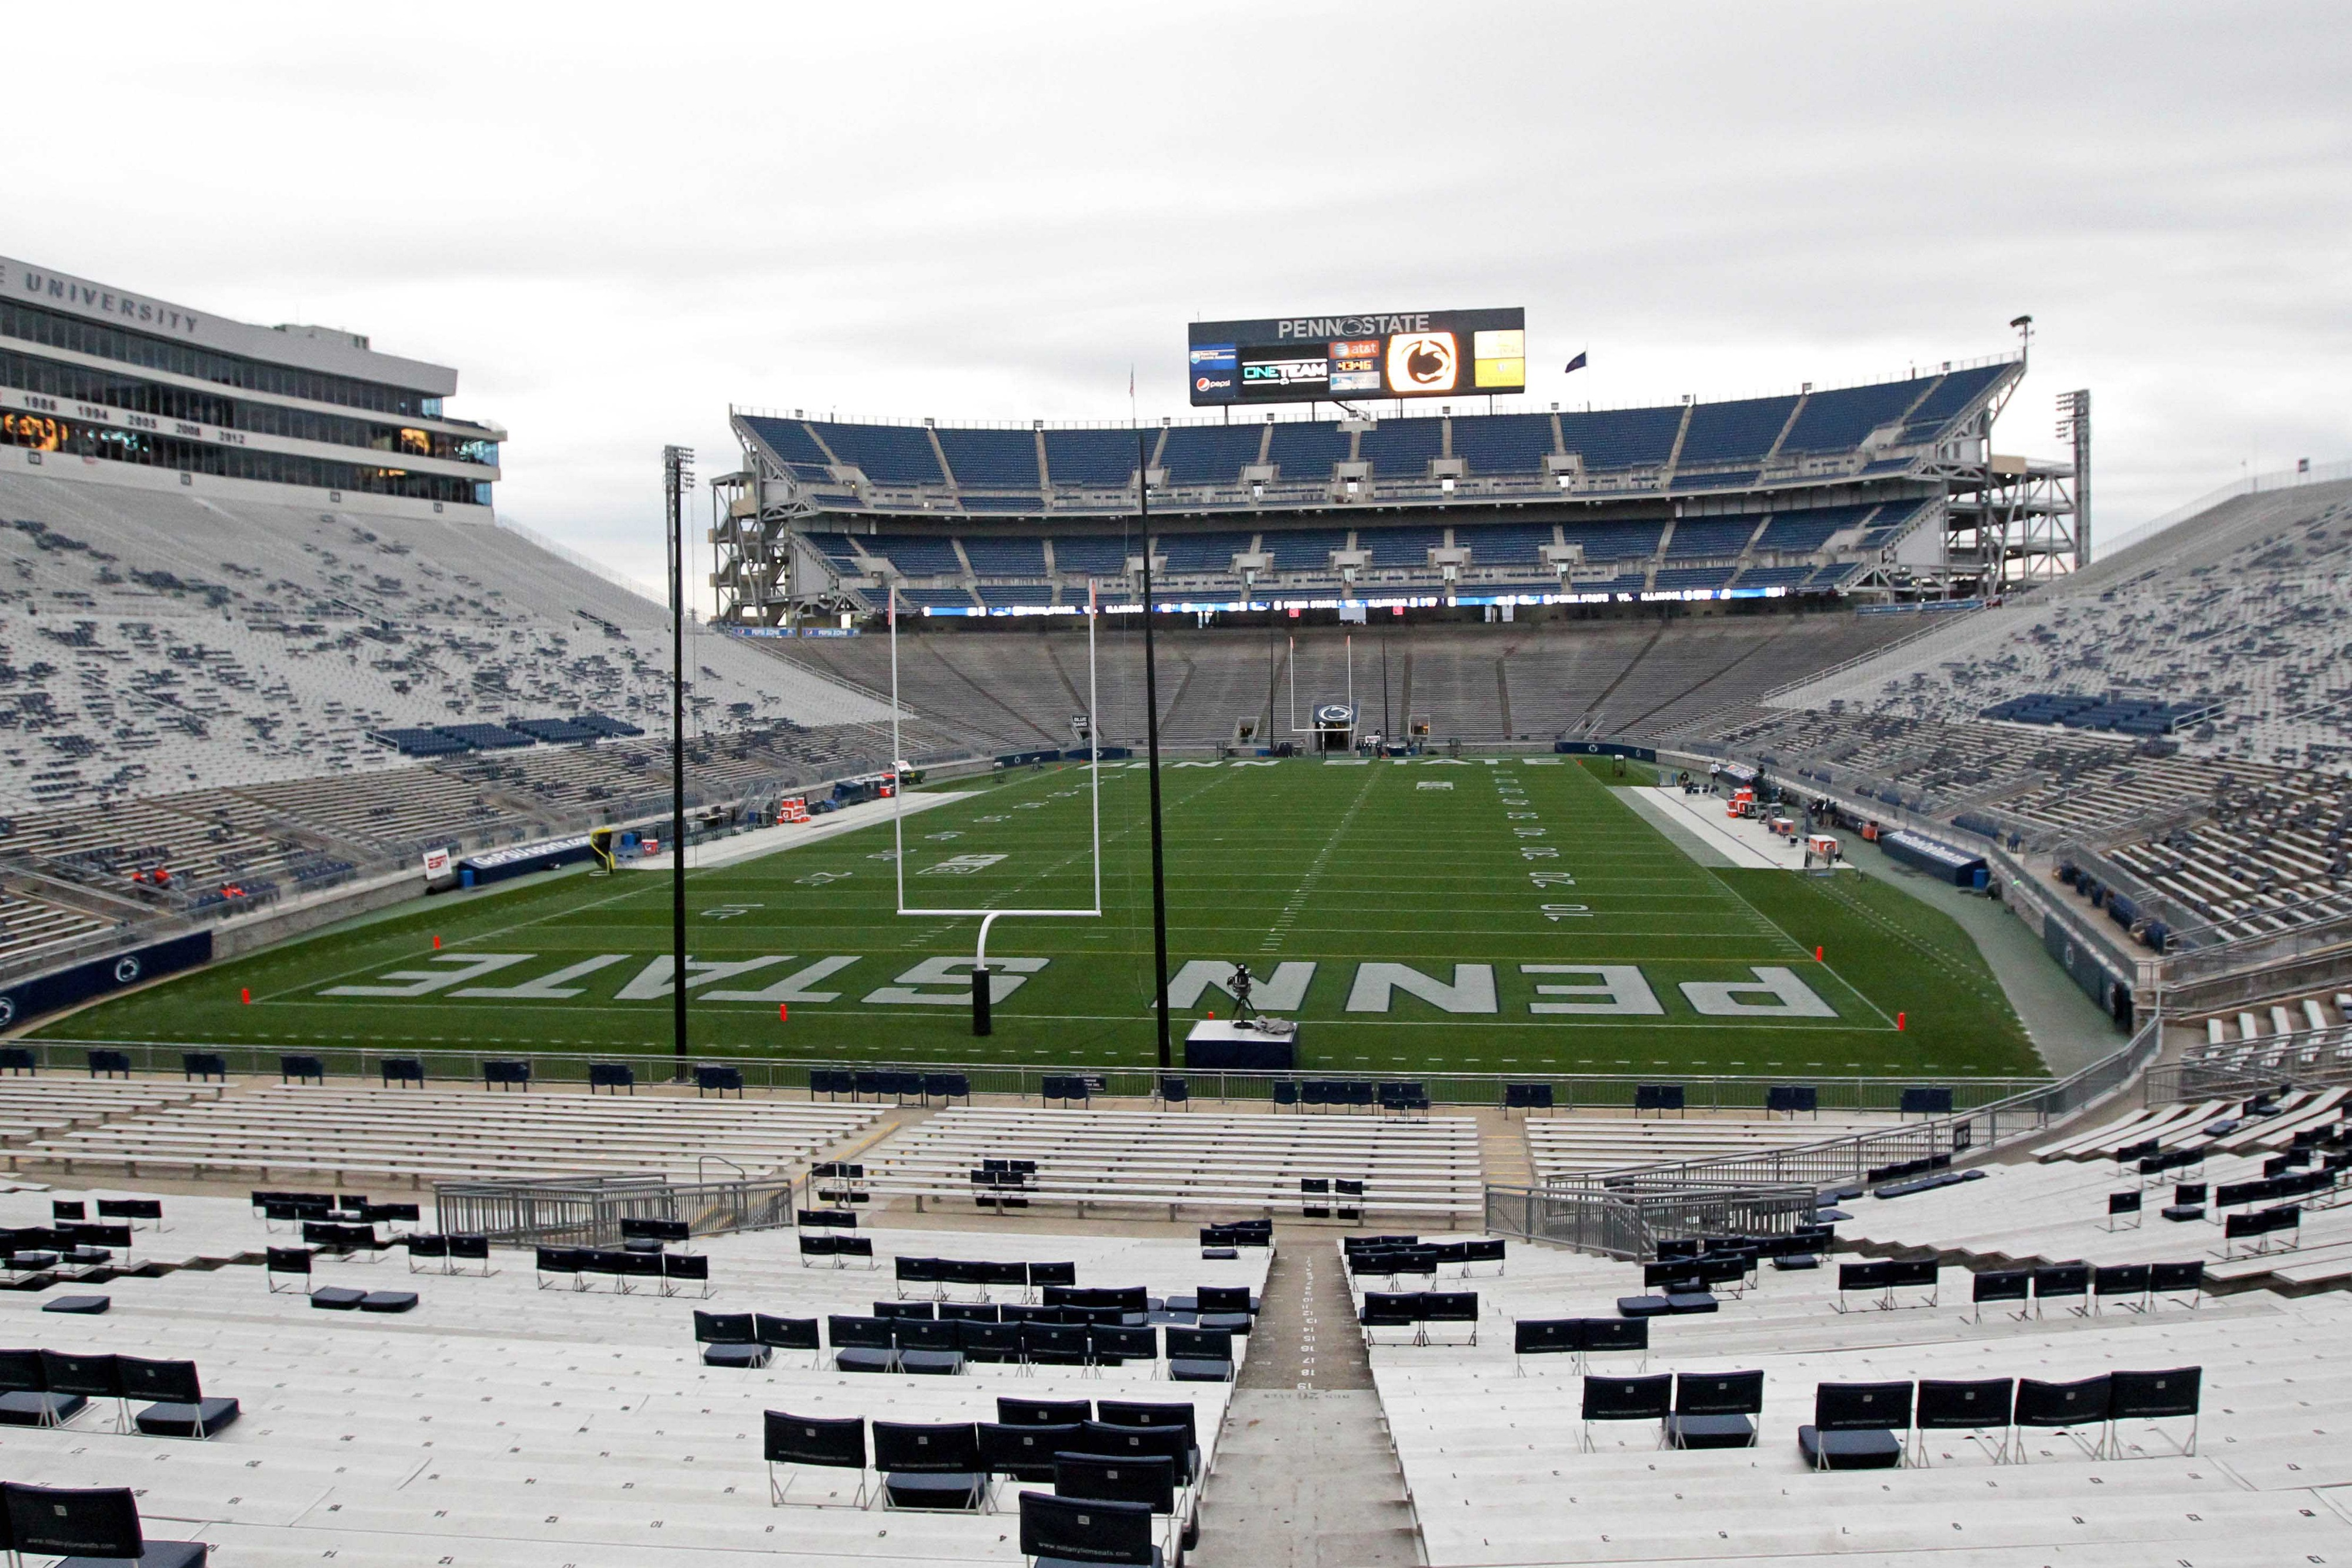 It's okay, Beaver Stadium. You'll be full in a few hours.